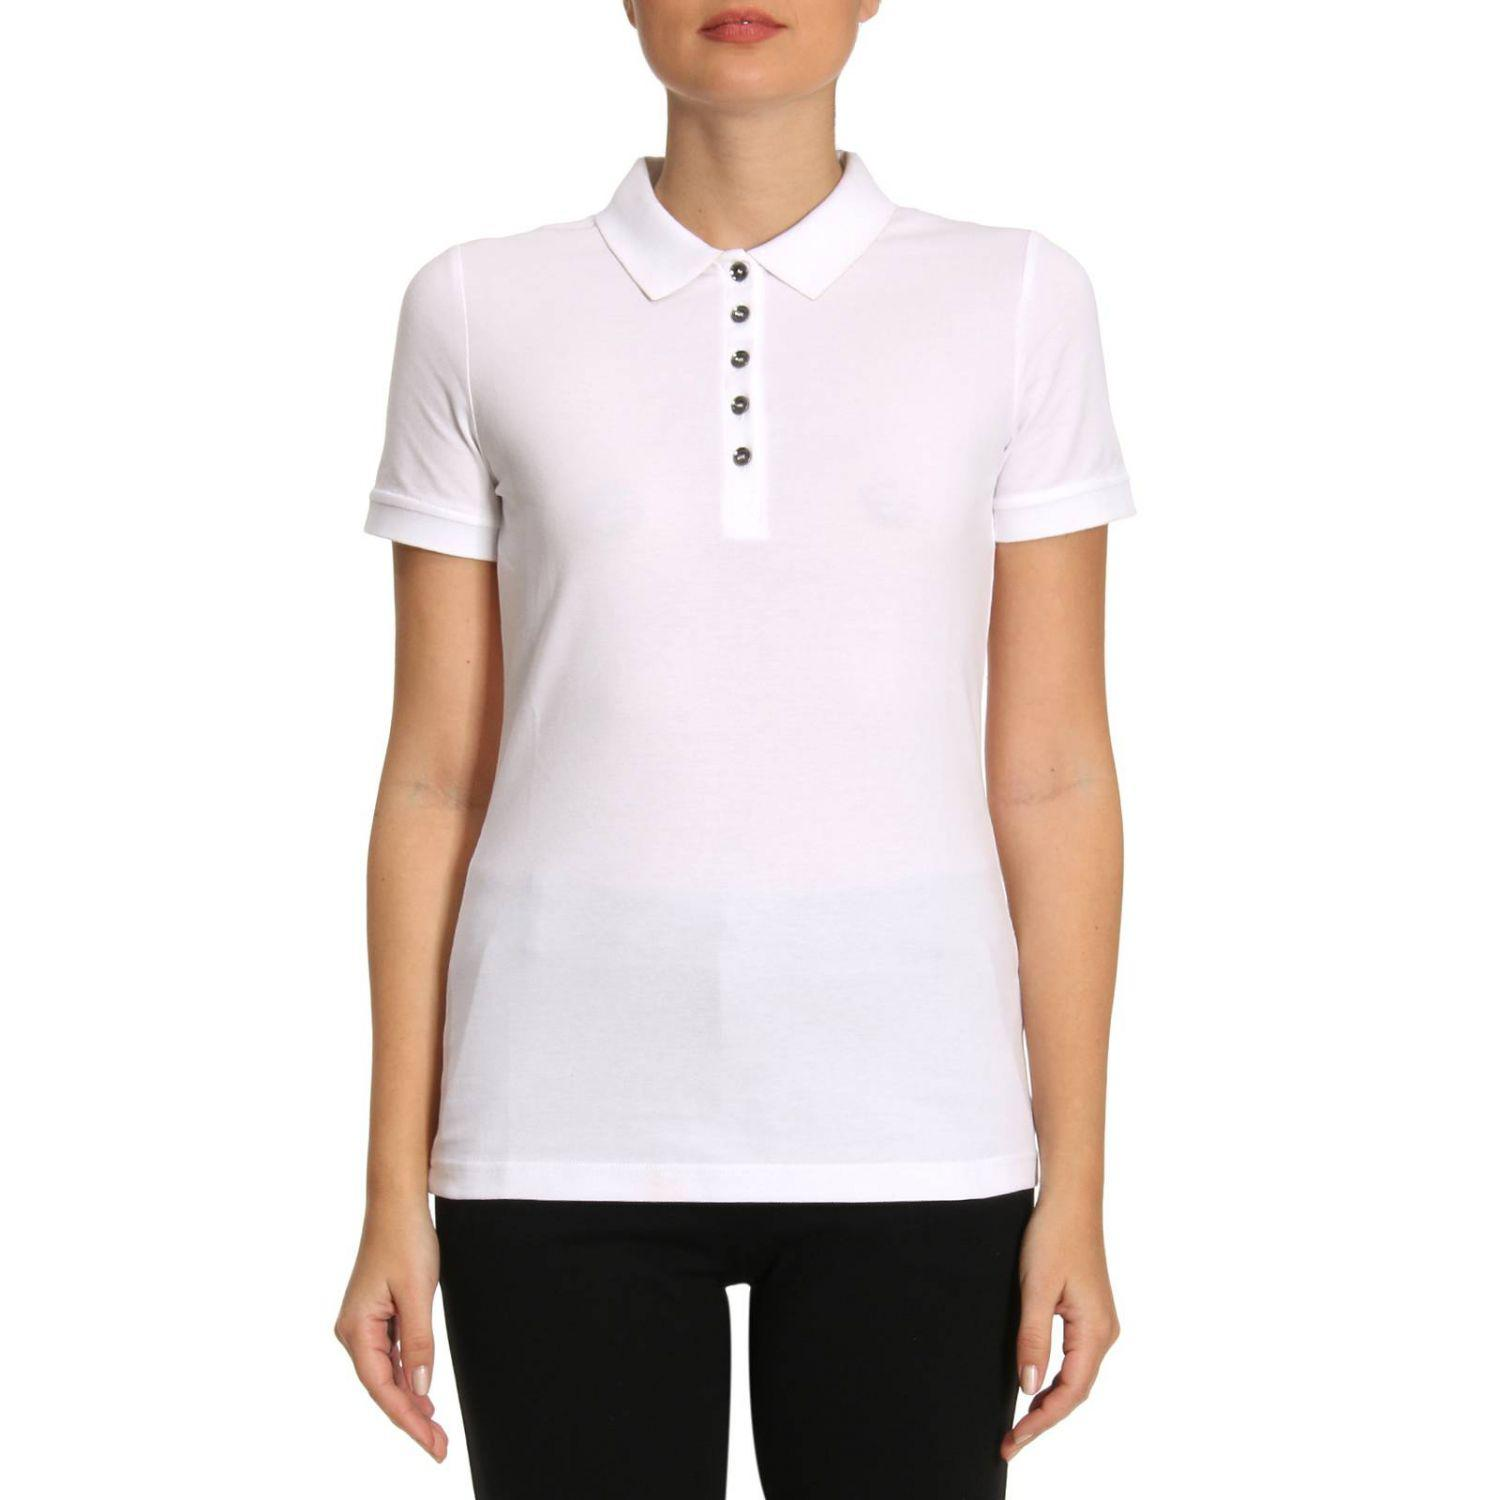 Lyst burberry t shirt women in white for Burberry t shirts for sale